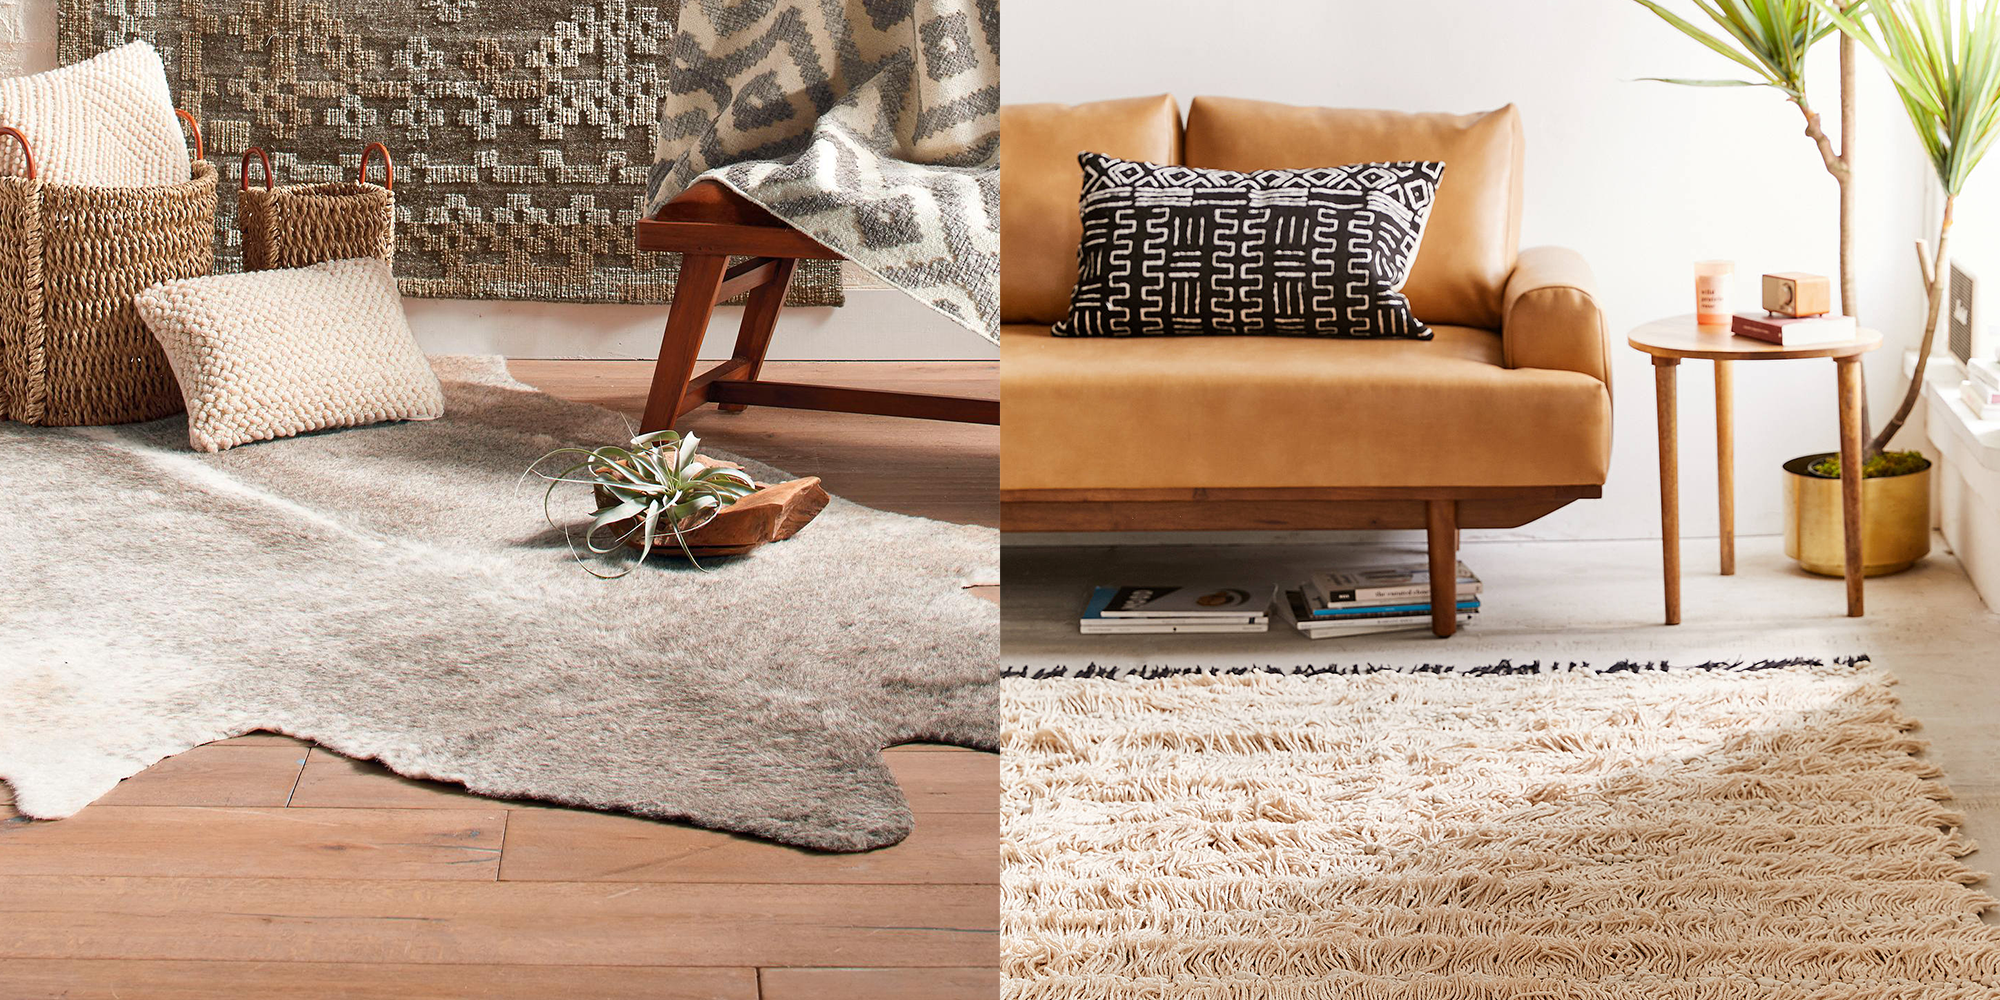 11 Chic Rugs So Comfy You'll Want To Sleep On Them